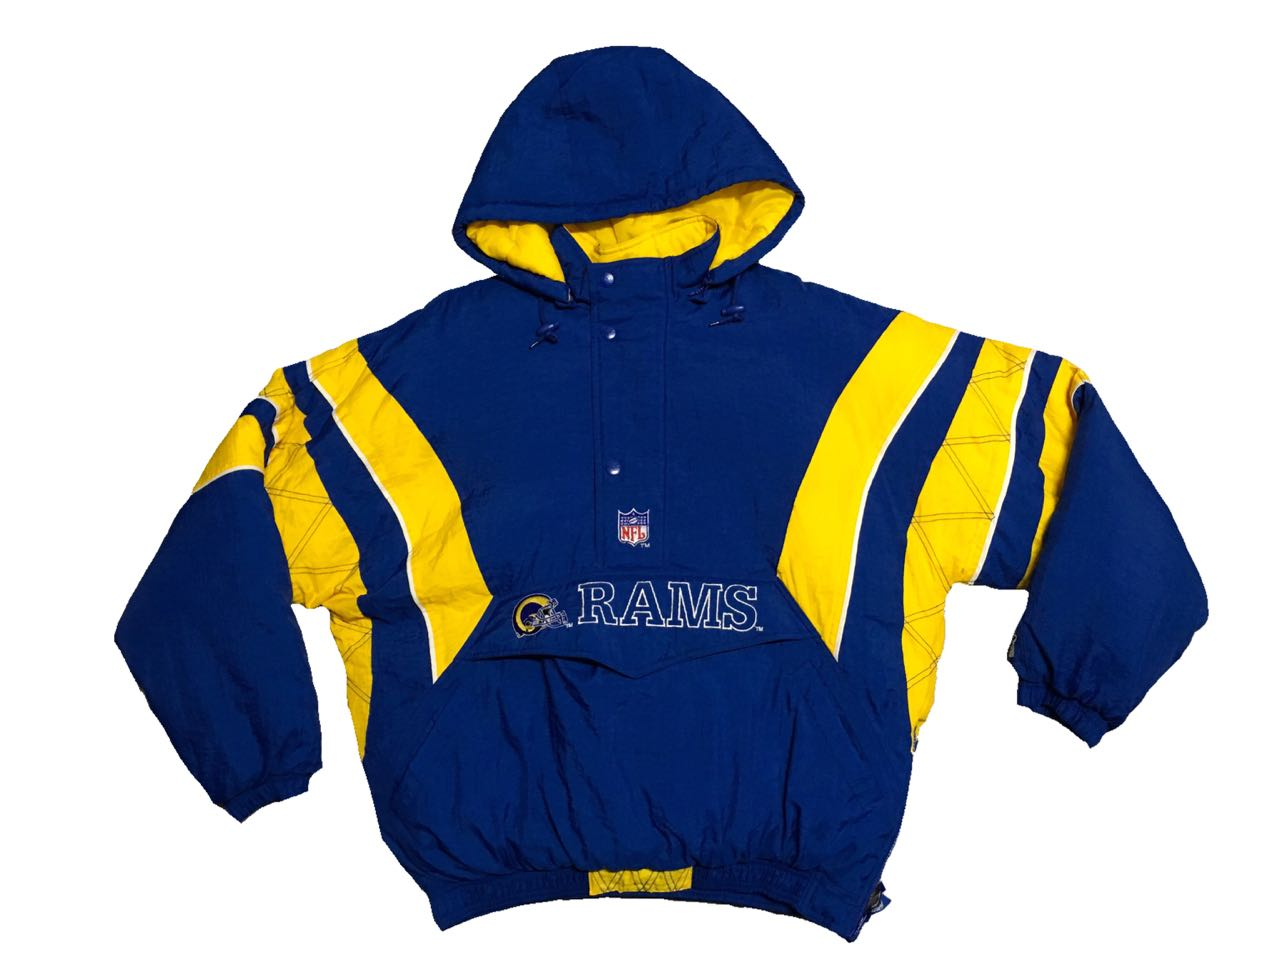 check out 8b3d6 acf0a brand :: starter :: Starter 90's vintage NFL St.Louis Rams ...